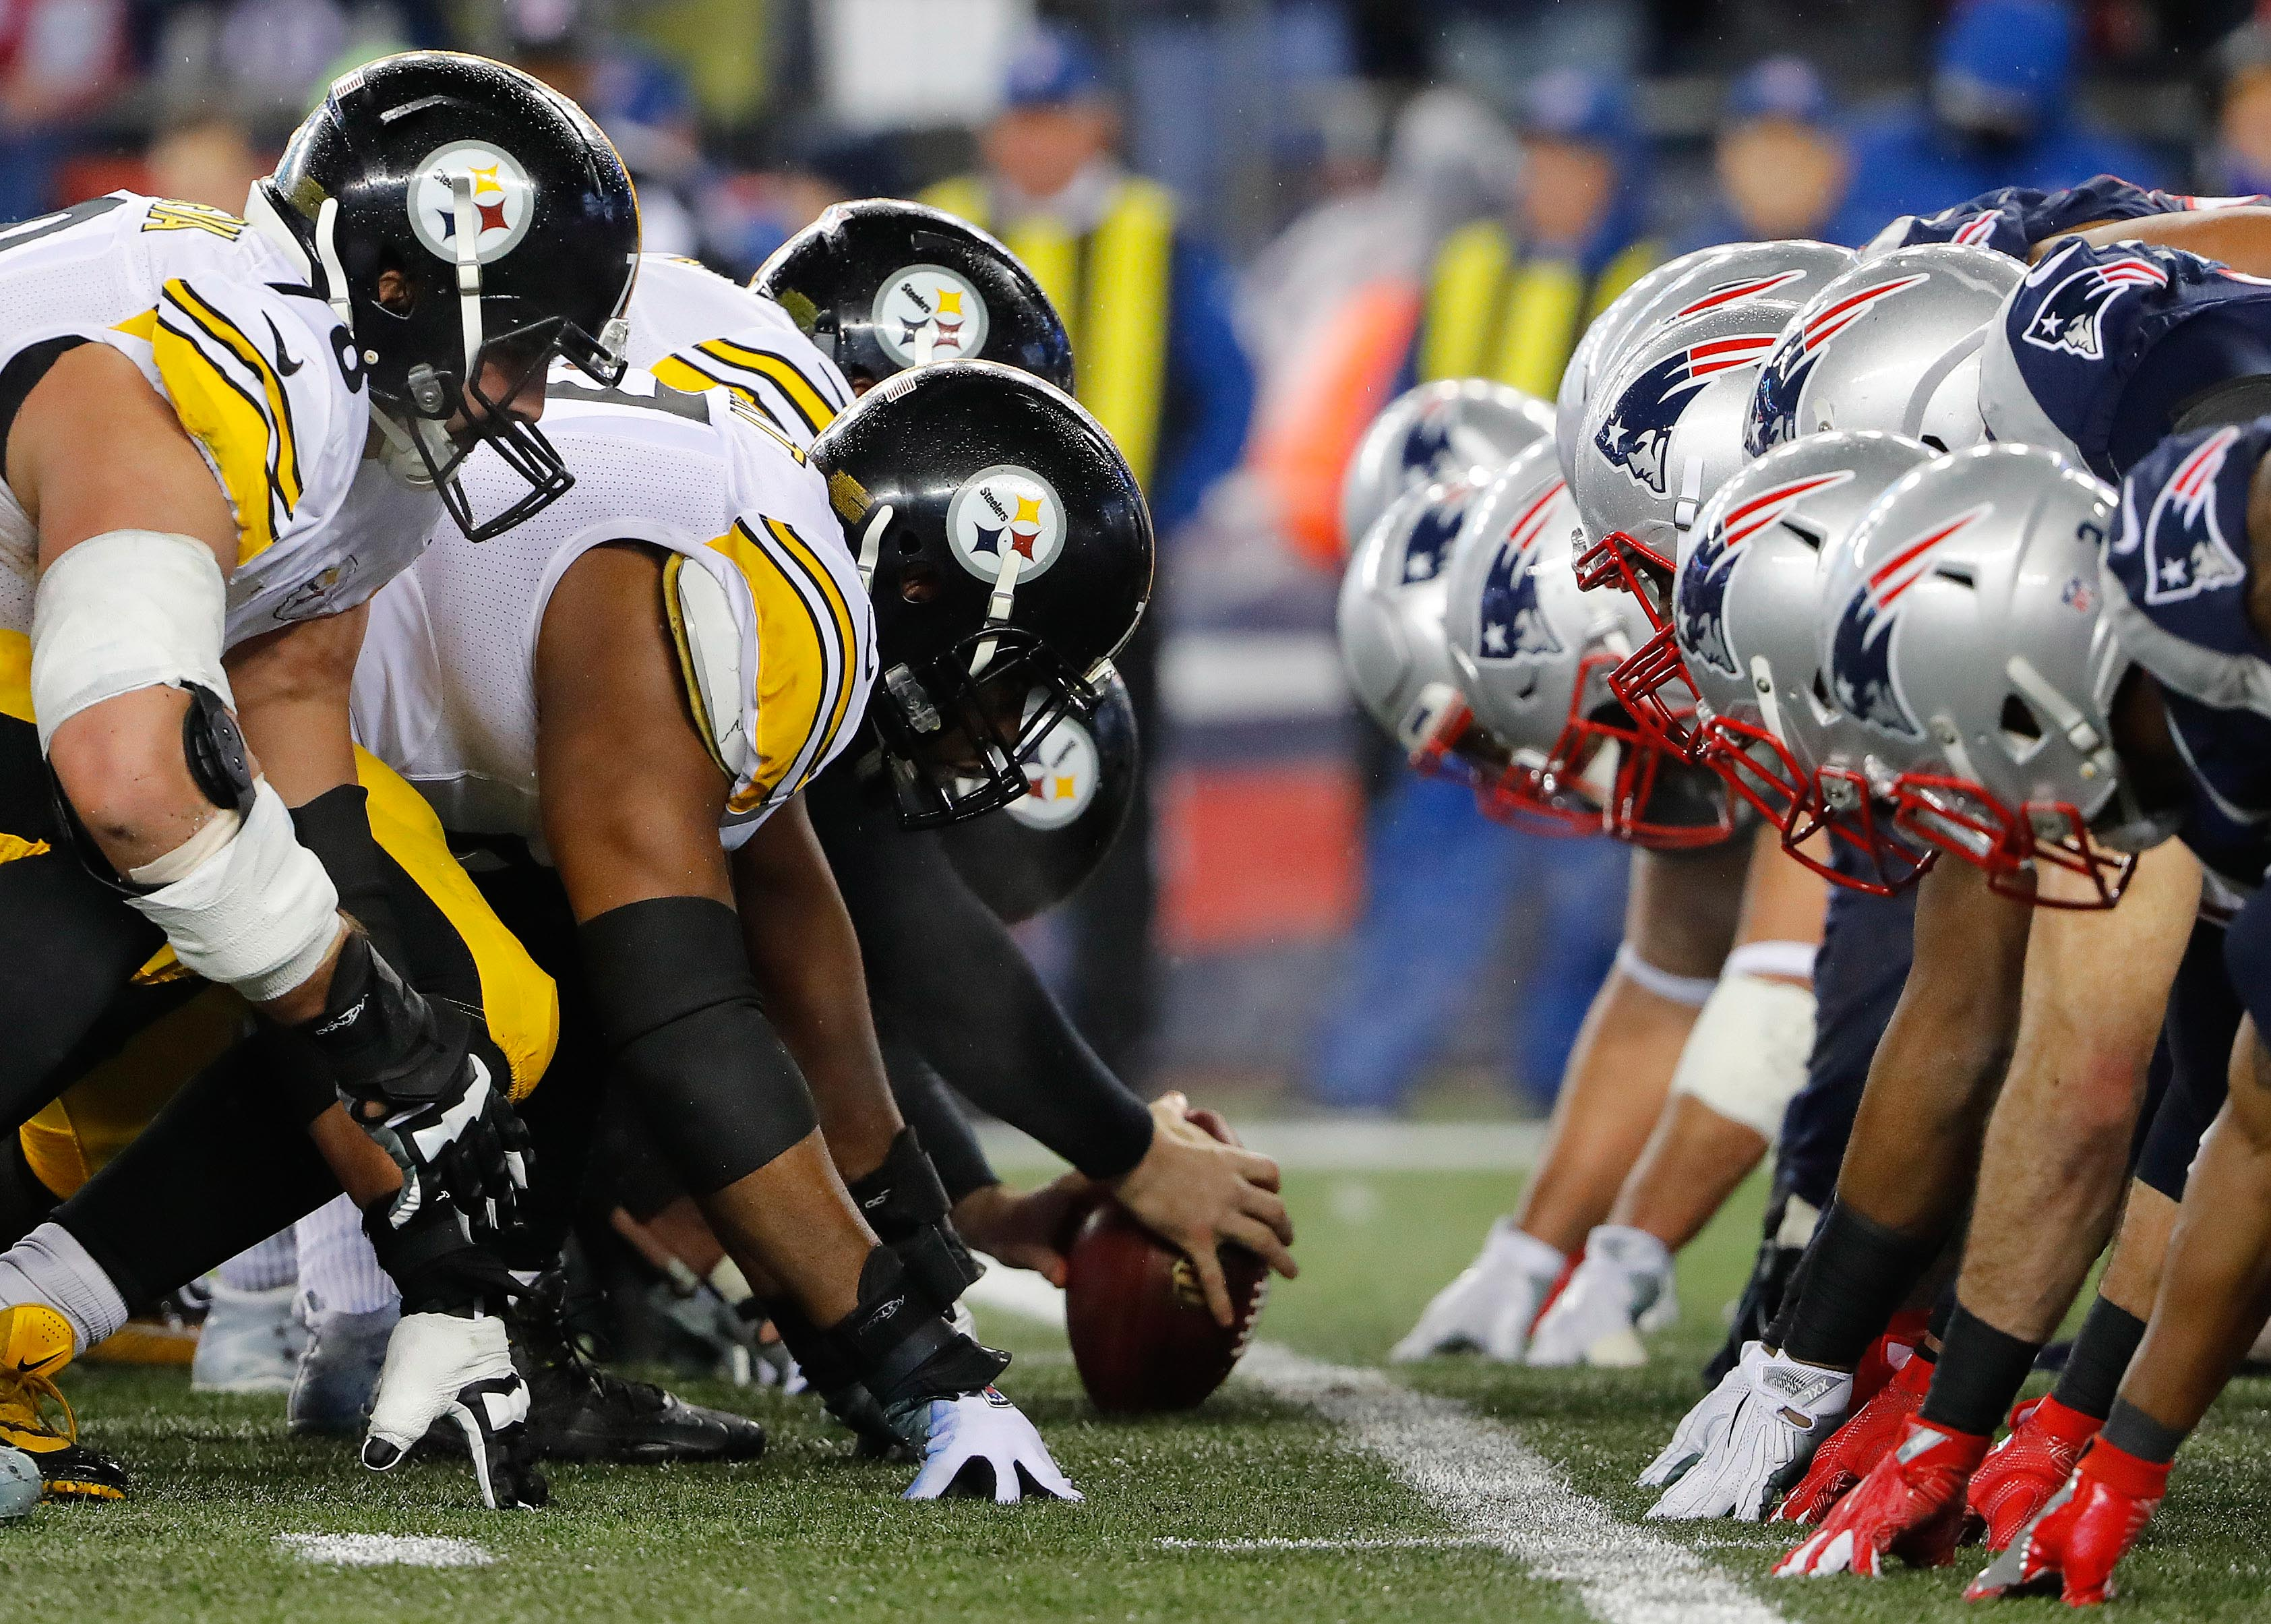 9842755-nfl-afc-championship-pittsburgh-steelers-at-new-england-patriots-1